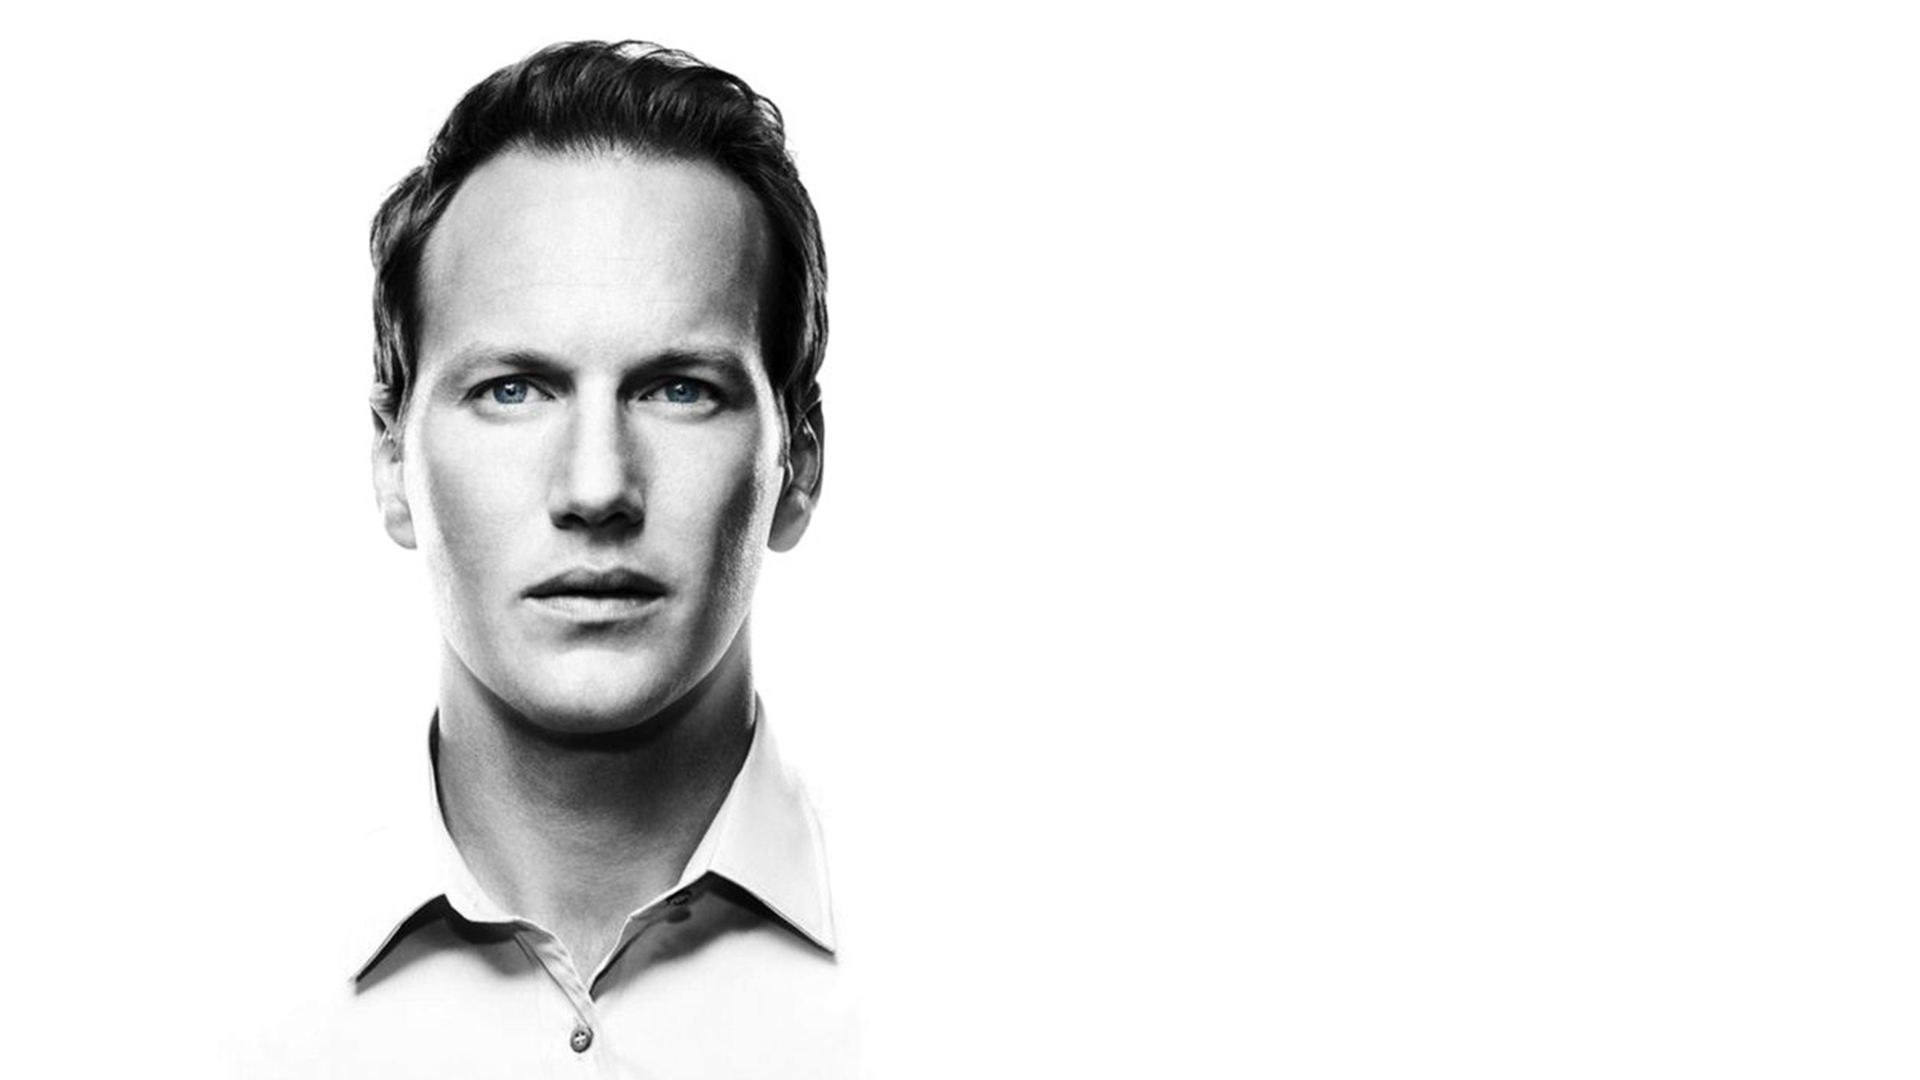 Patrick Wallpaper Hd Patrick Wilson Wallpapers Hd Pictures Images High Quality